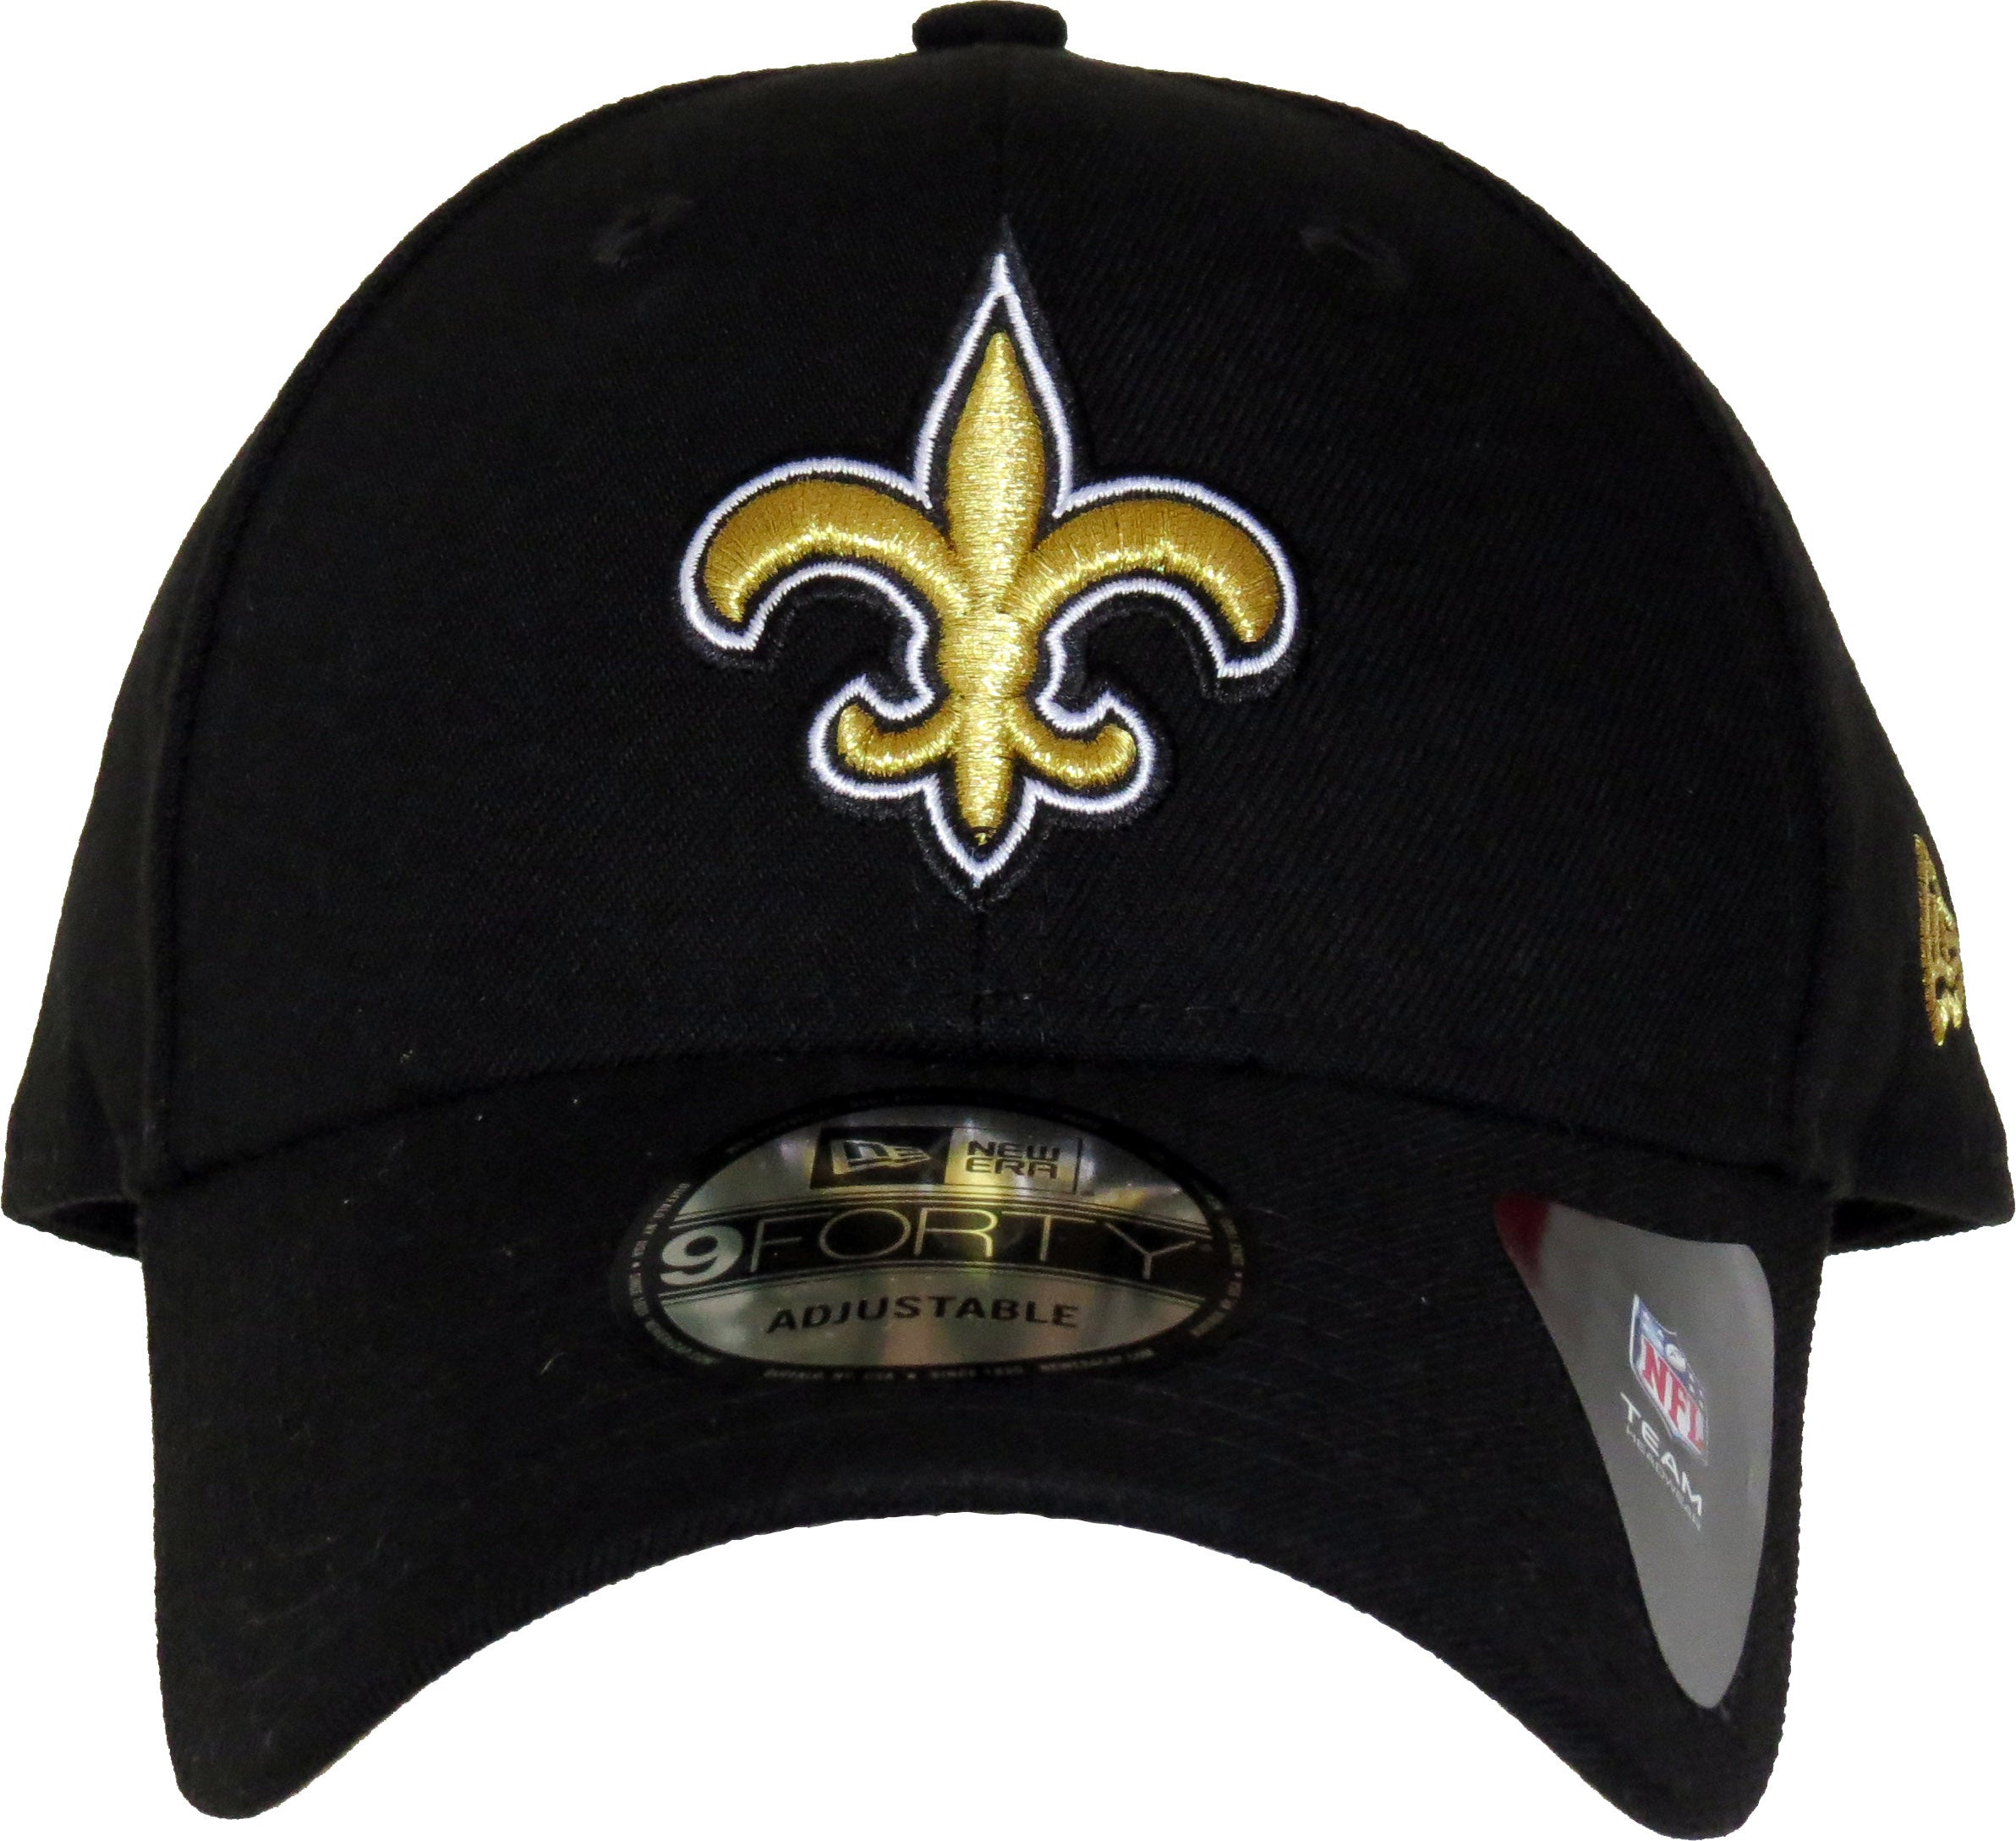 36635e4f9 ... New Orleans Saints New Era 940 The League NFL Adjustable Cap -  pumpheadgear